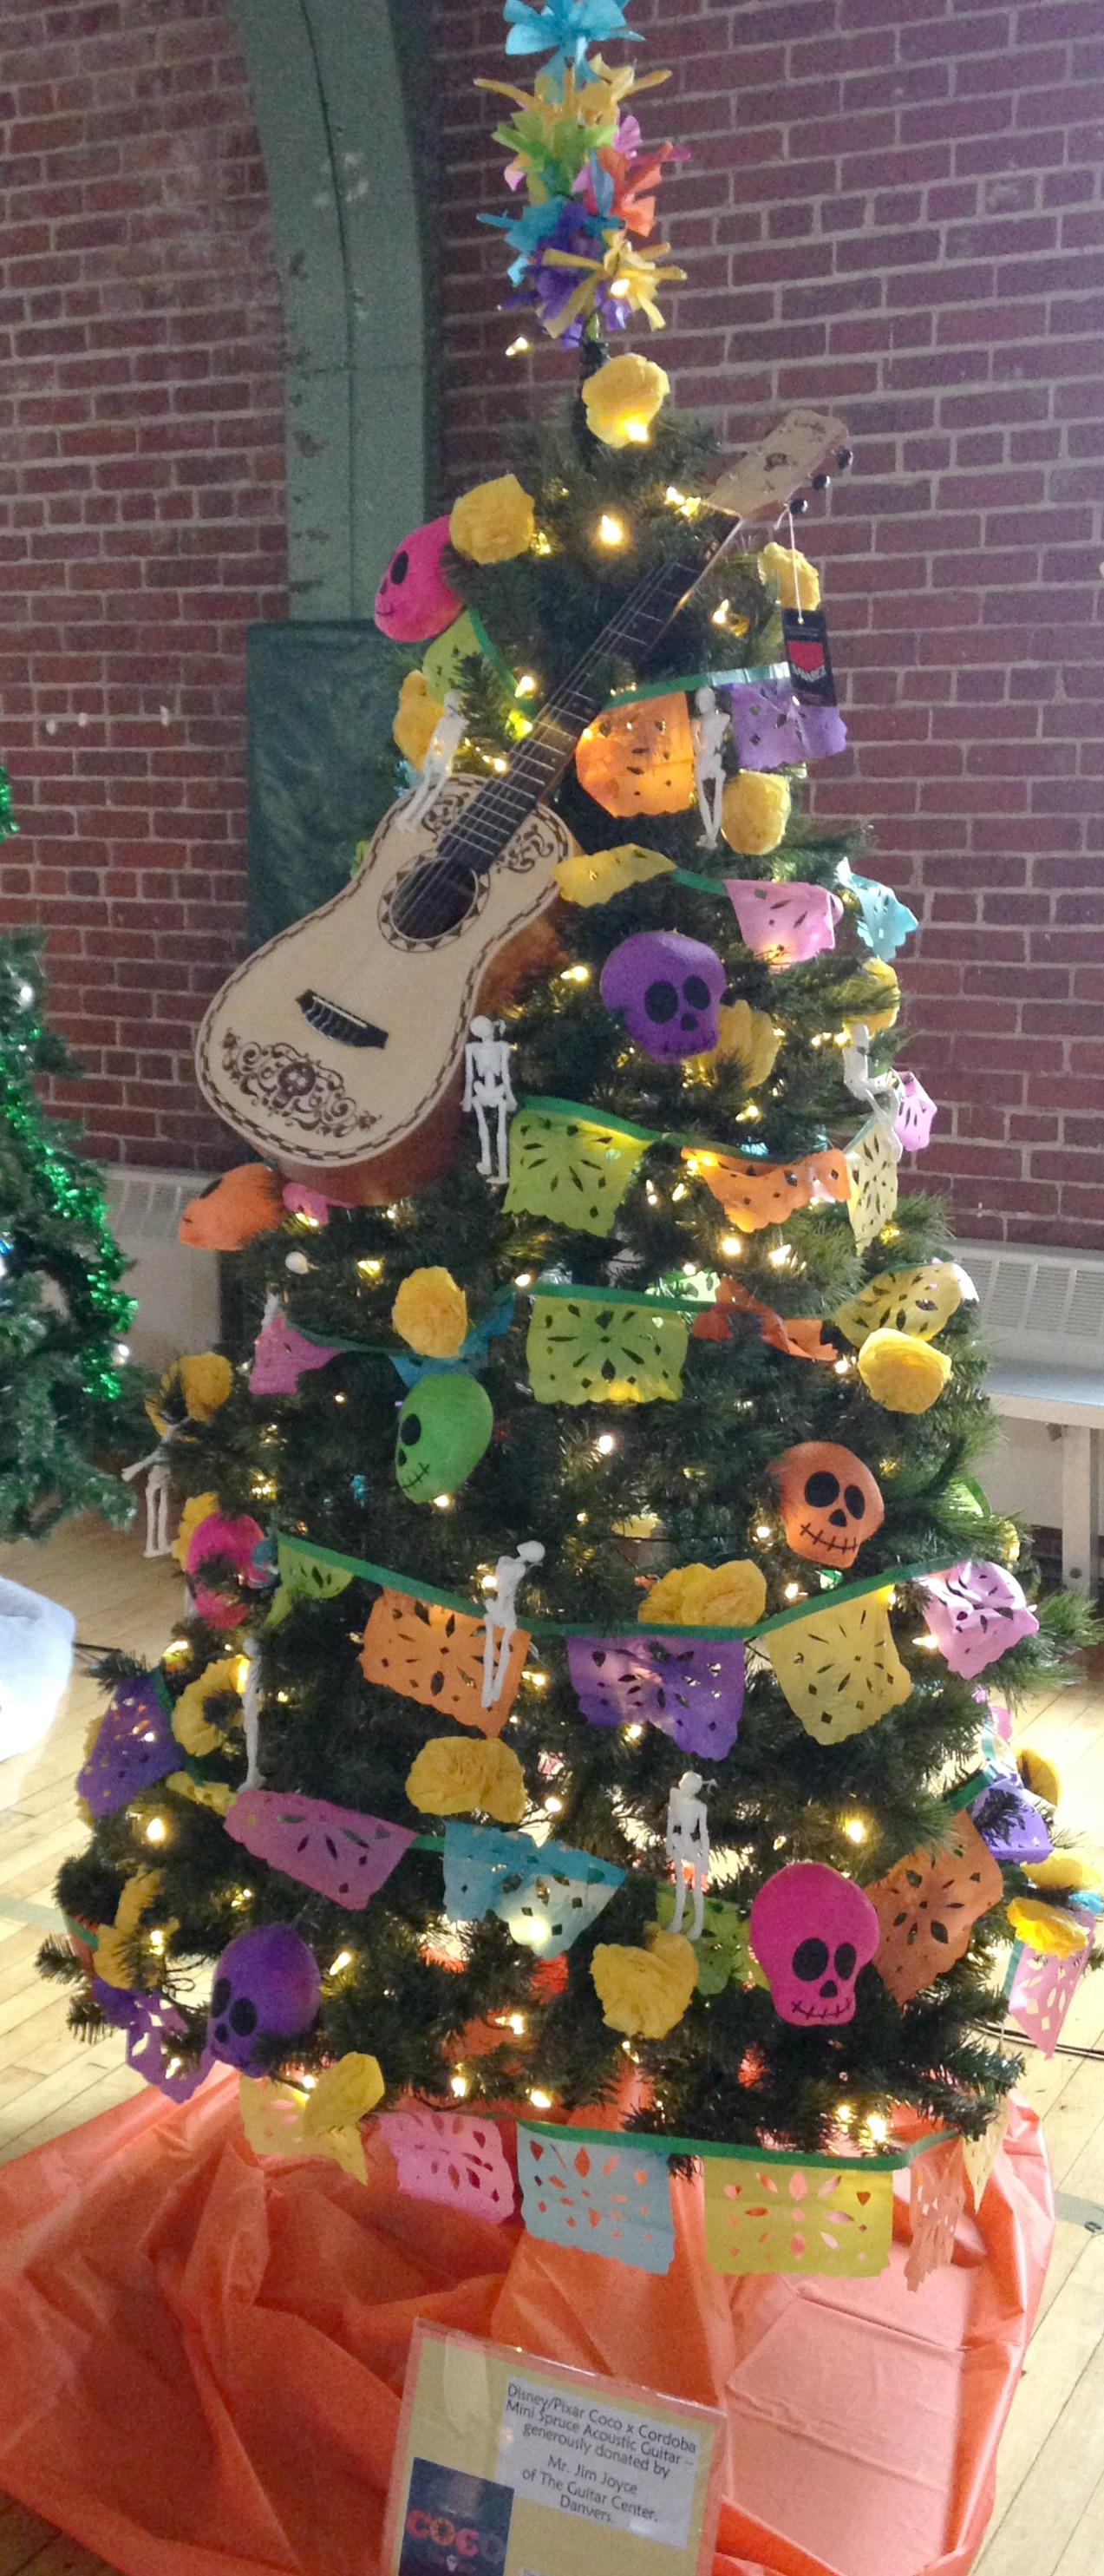 the stoneham chamber entered a disneypixar coco movie themed tree in the boys girls club of wakefield and stonehams 3rd annual festival of trees